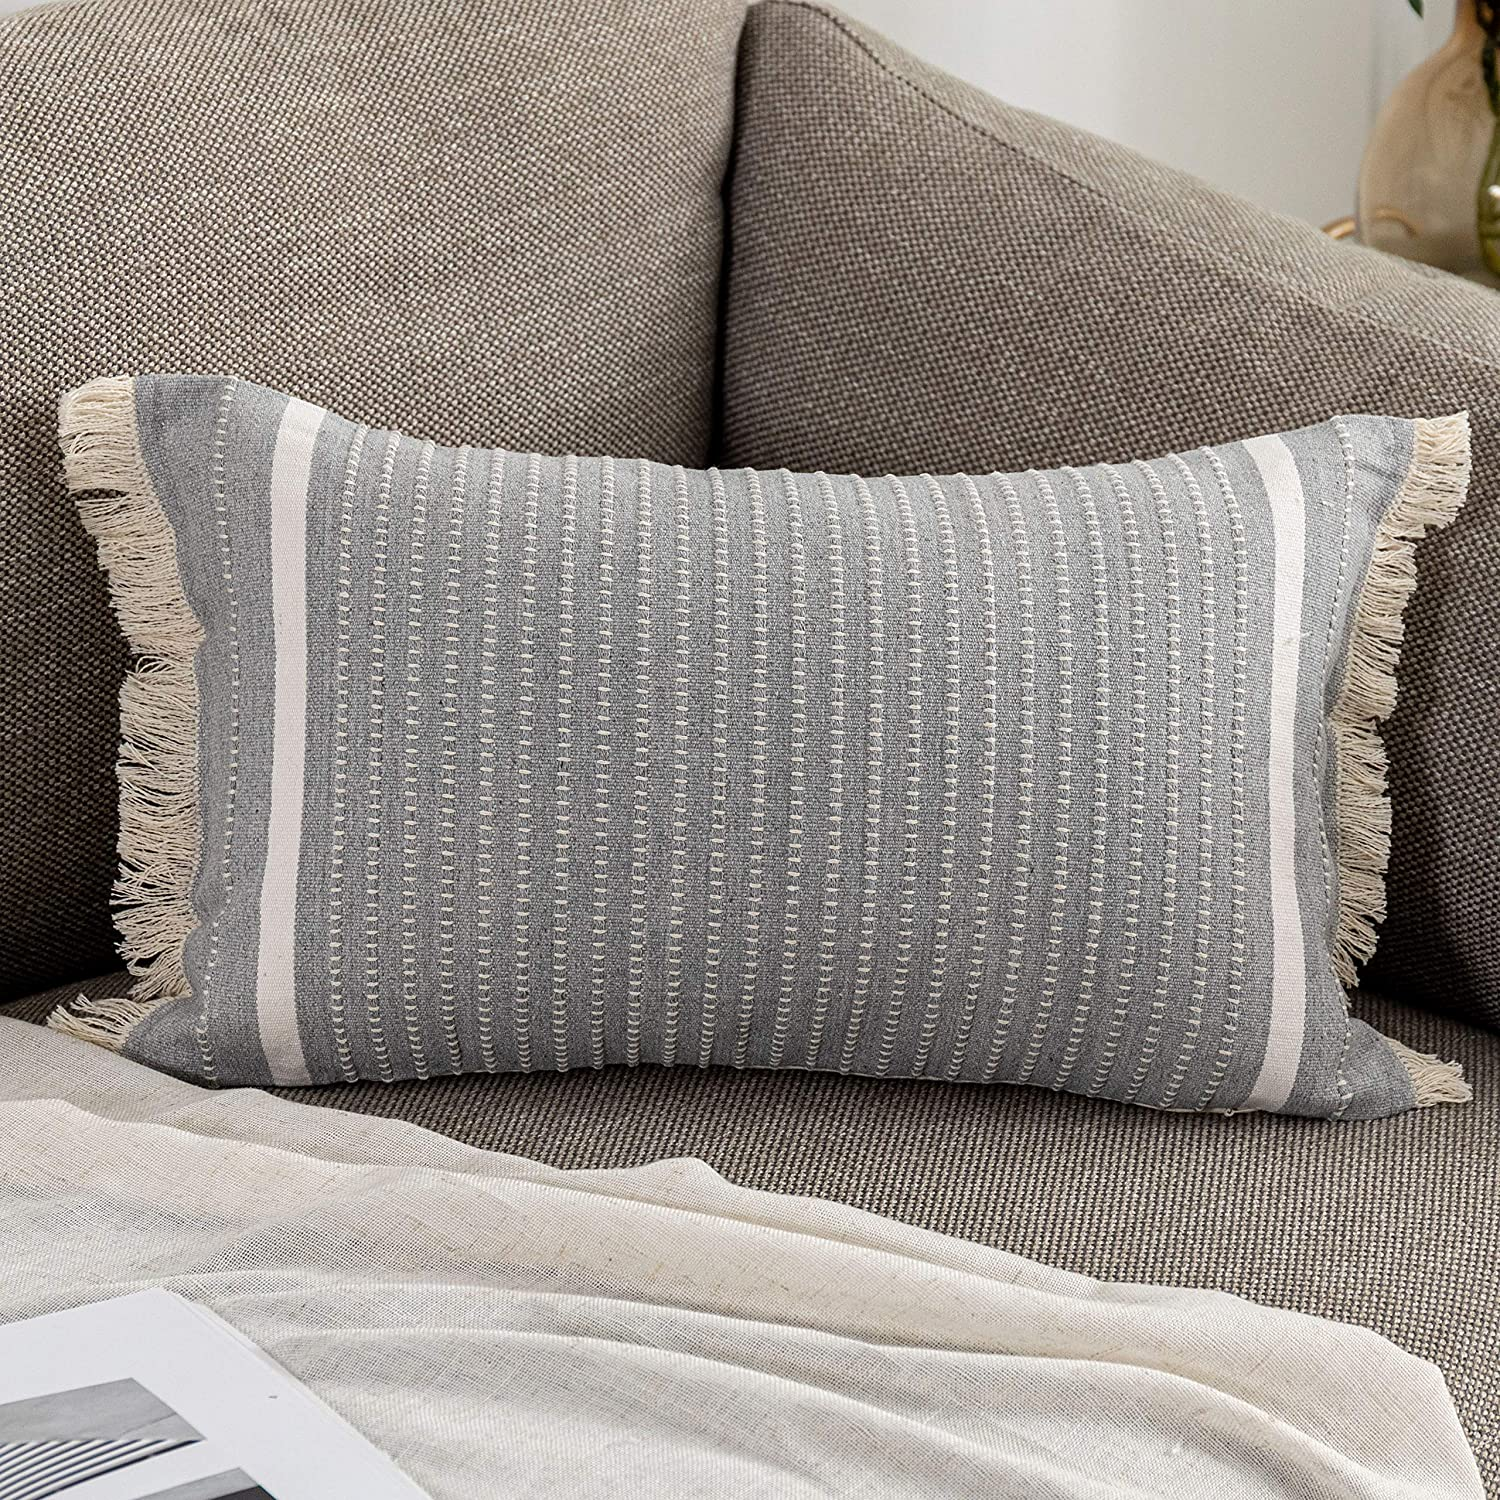 OJIA Modern Throw Pillow Challenge the lowest price Cover Fr Tassels Decorative Award-winning store Liana with